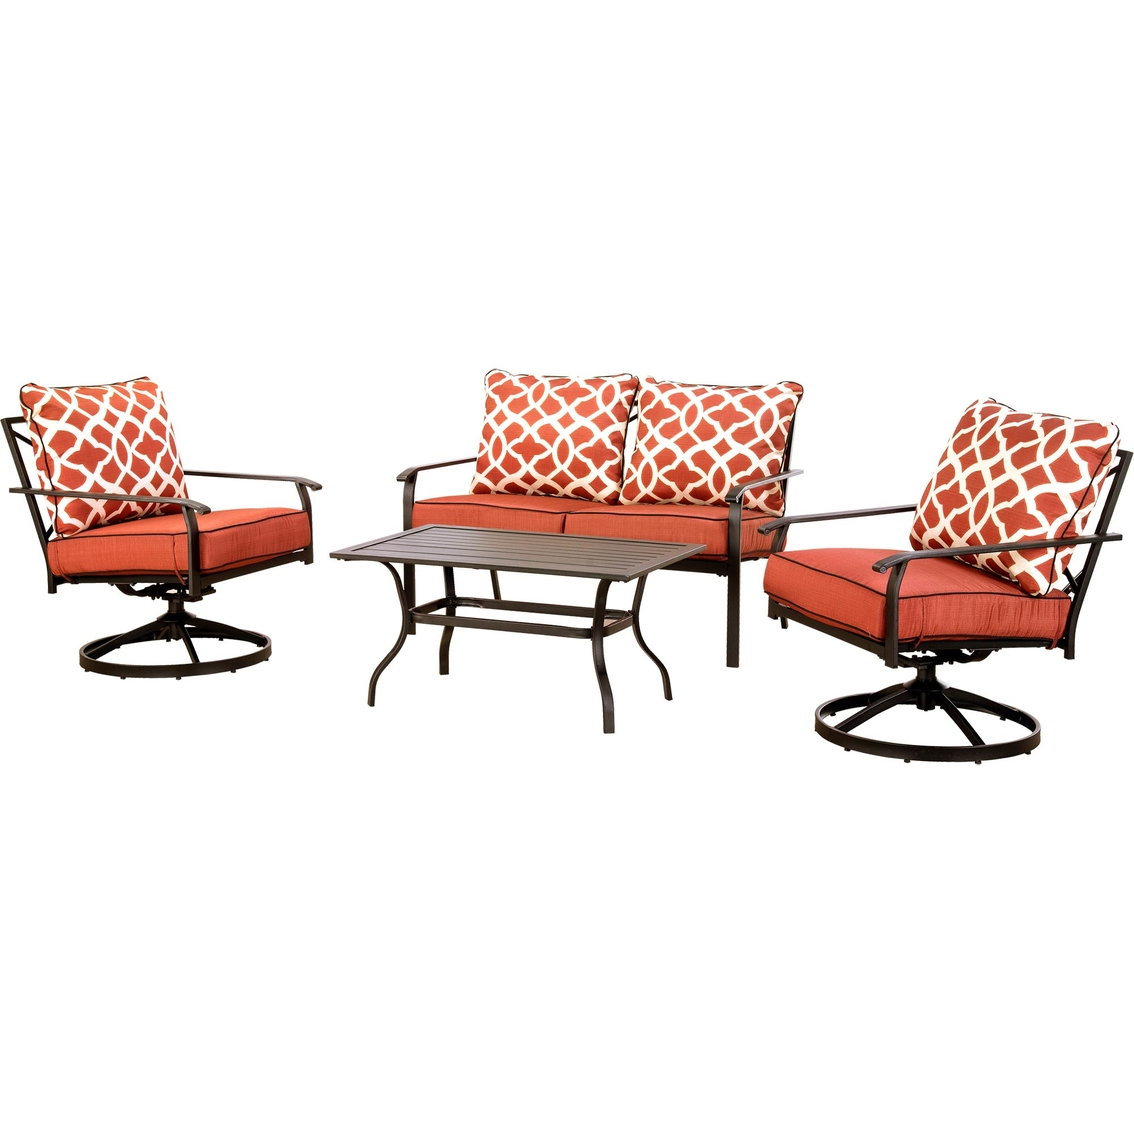 Big Sofa Christian Courtyard Creations Christian 4 Pc Cushion Sofa Set